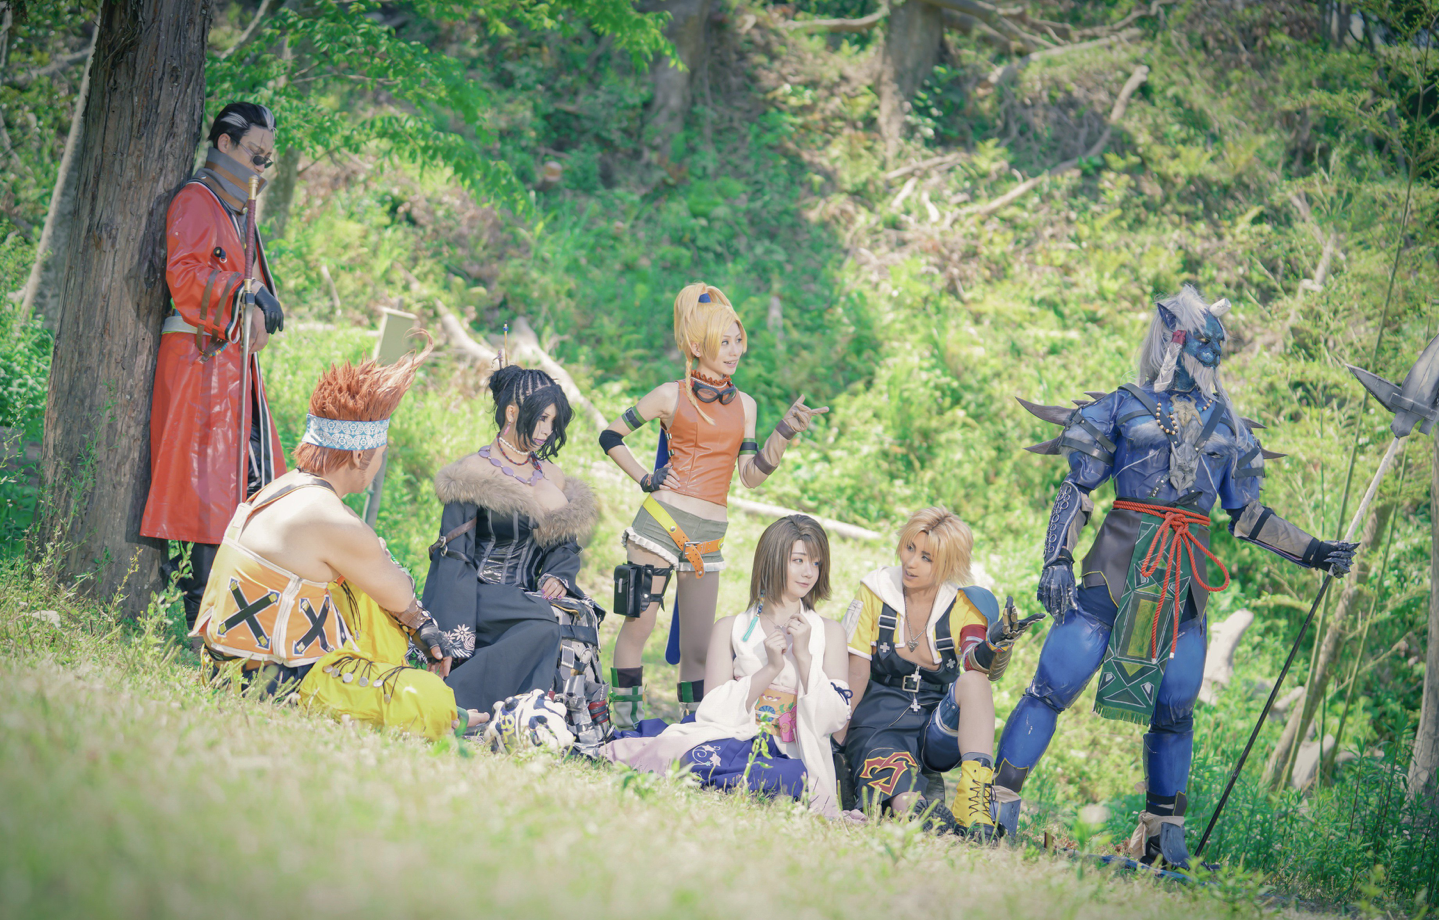 actualidad japon  El cosplay grupal ABSOLUTO y DEFINITIVO de Final Fantasy X